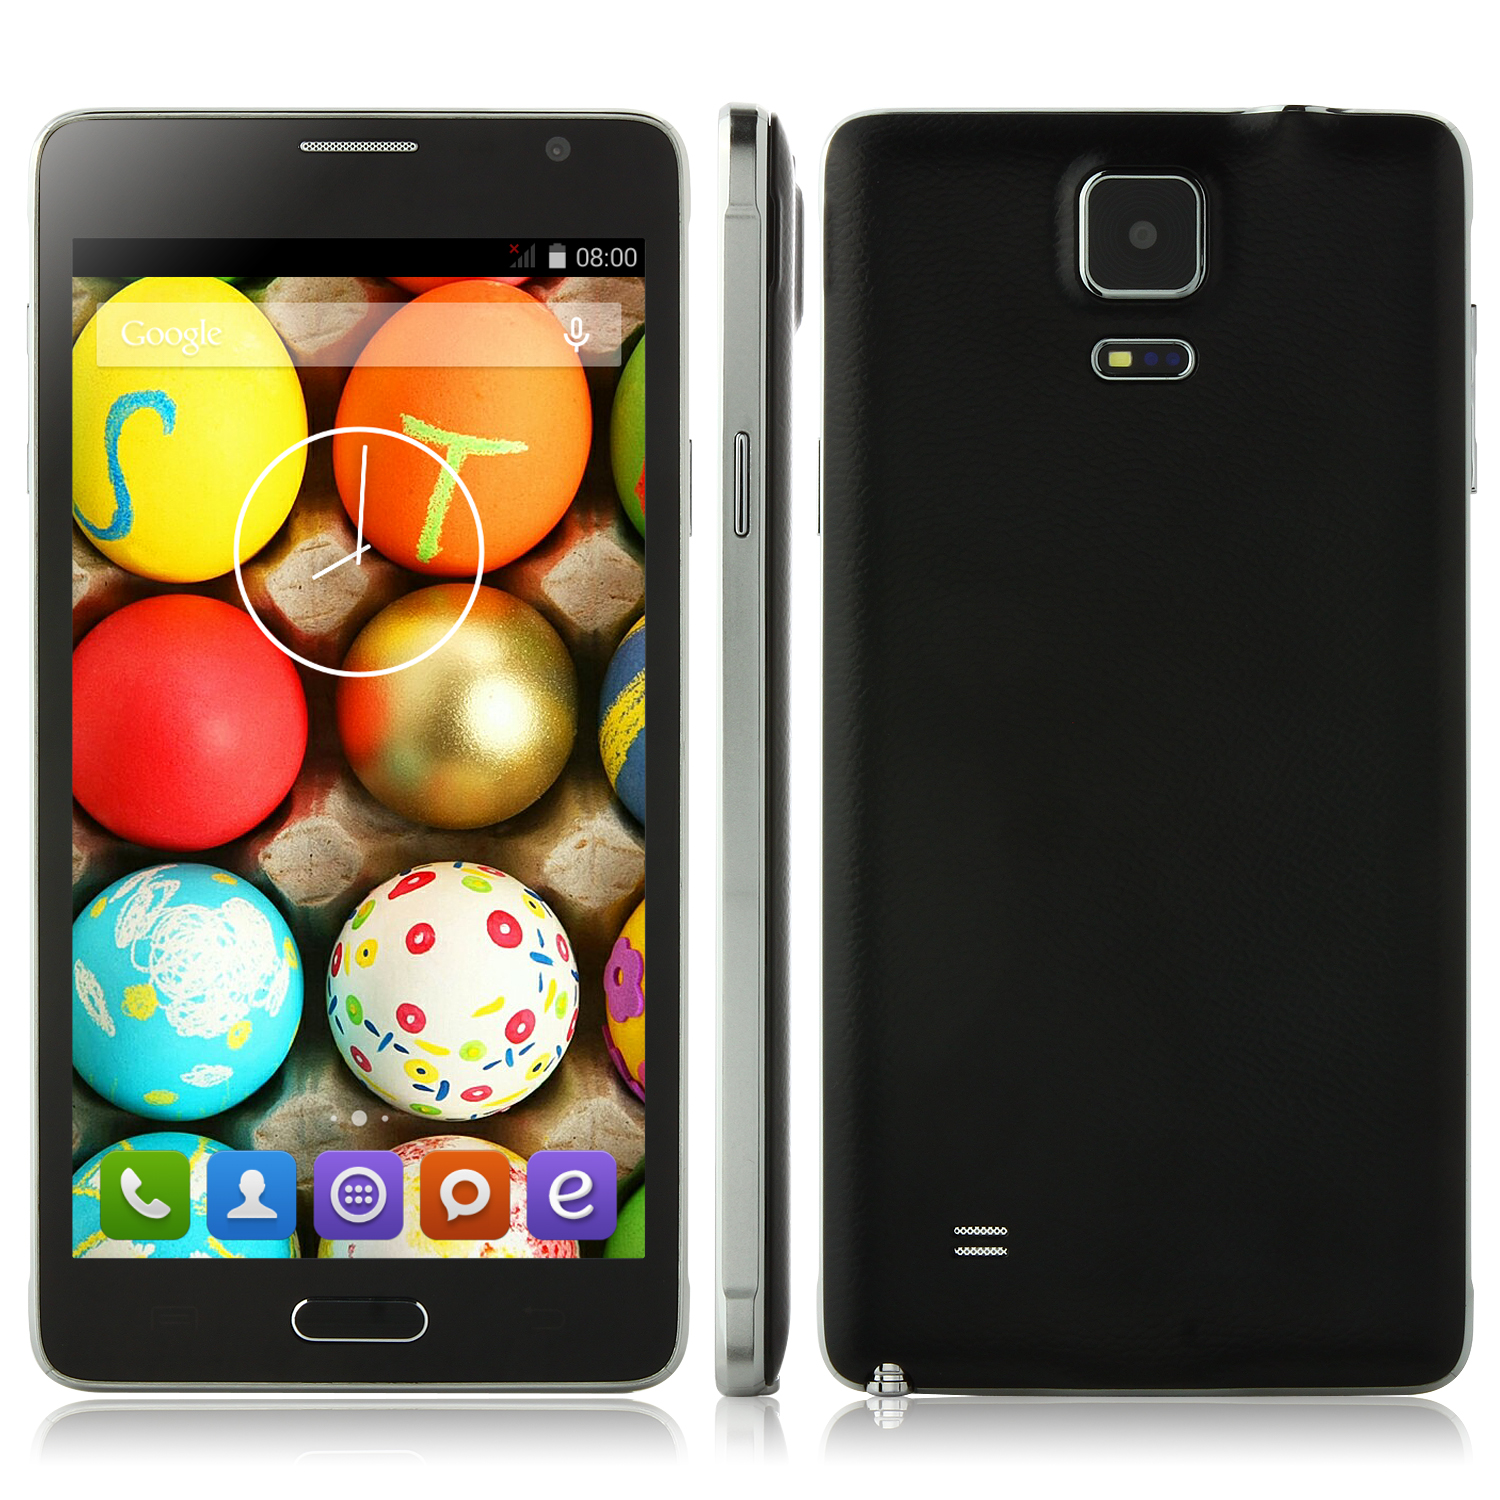 JIAKE N9100 Smartphone Android 4.4 MTK6582 Quad Core 1GB 8GB 5.5 Inch QHD Screen Black